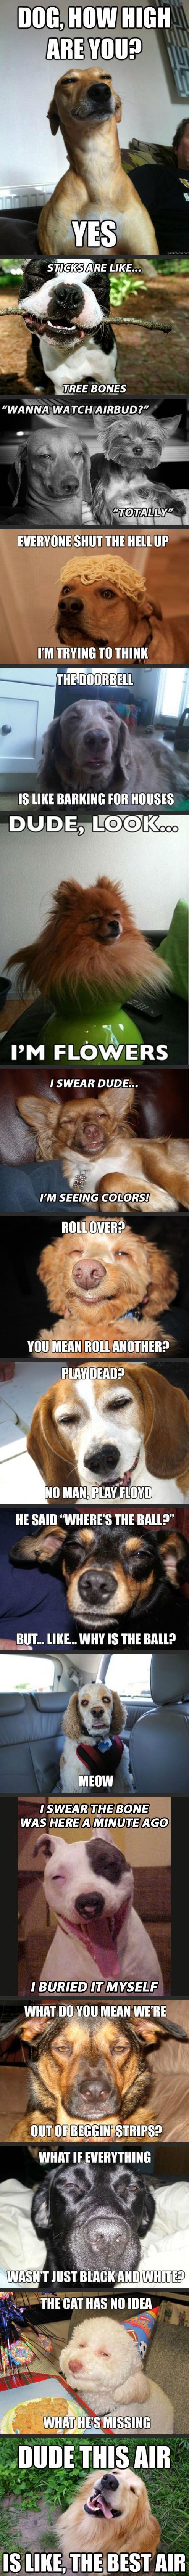 Dog memes that will put a smile on your face :-)